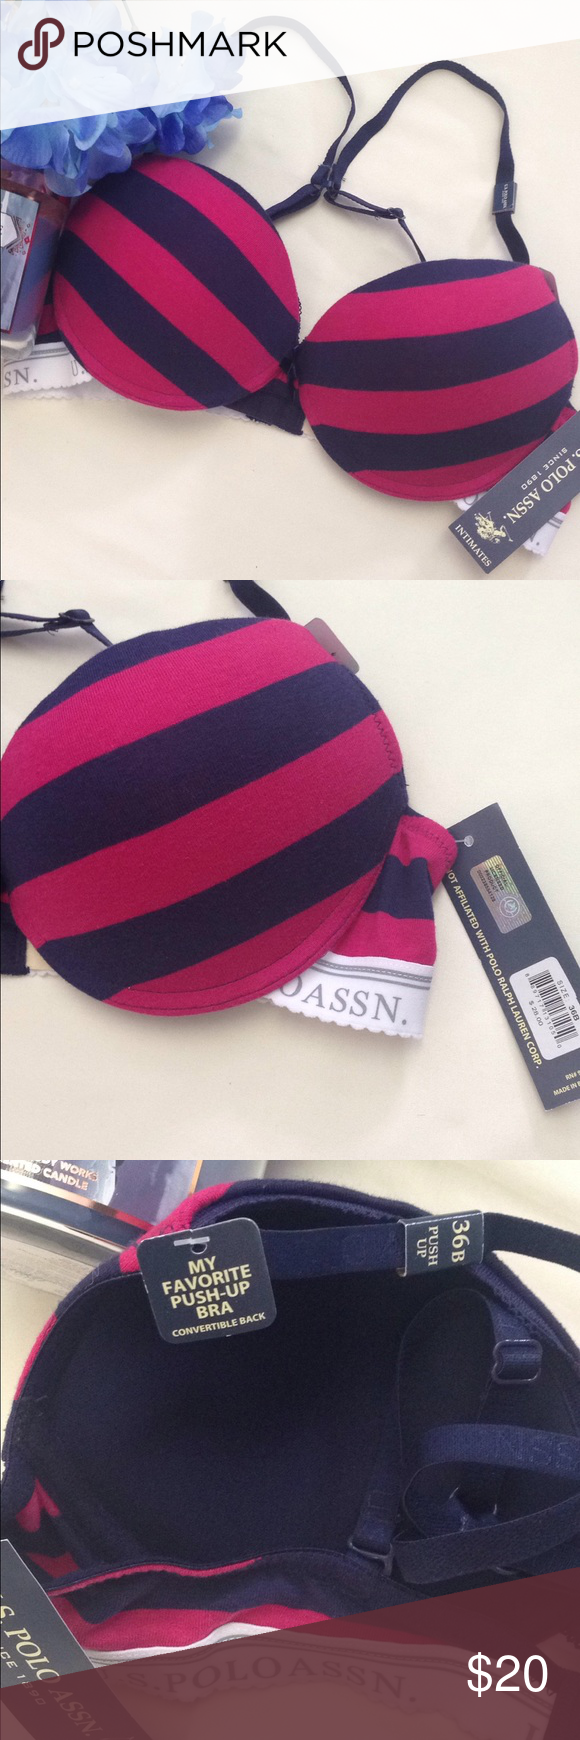 478196c5ec NWT push up convertible U.S polo assn. bra Brand new with tags ...